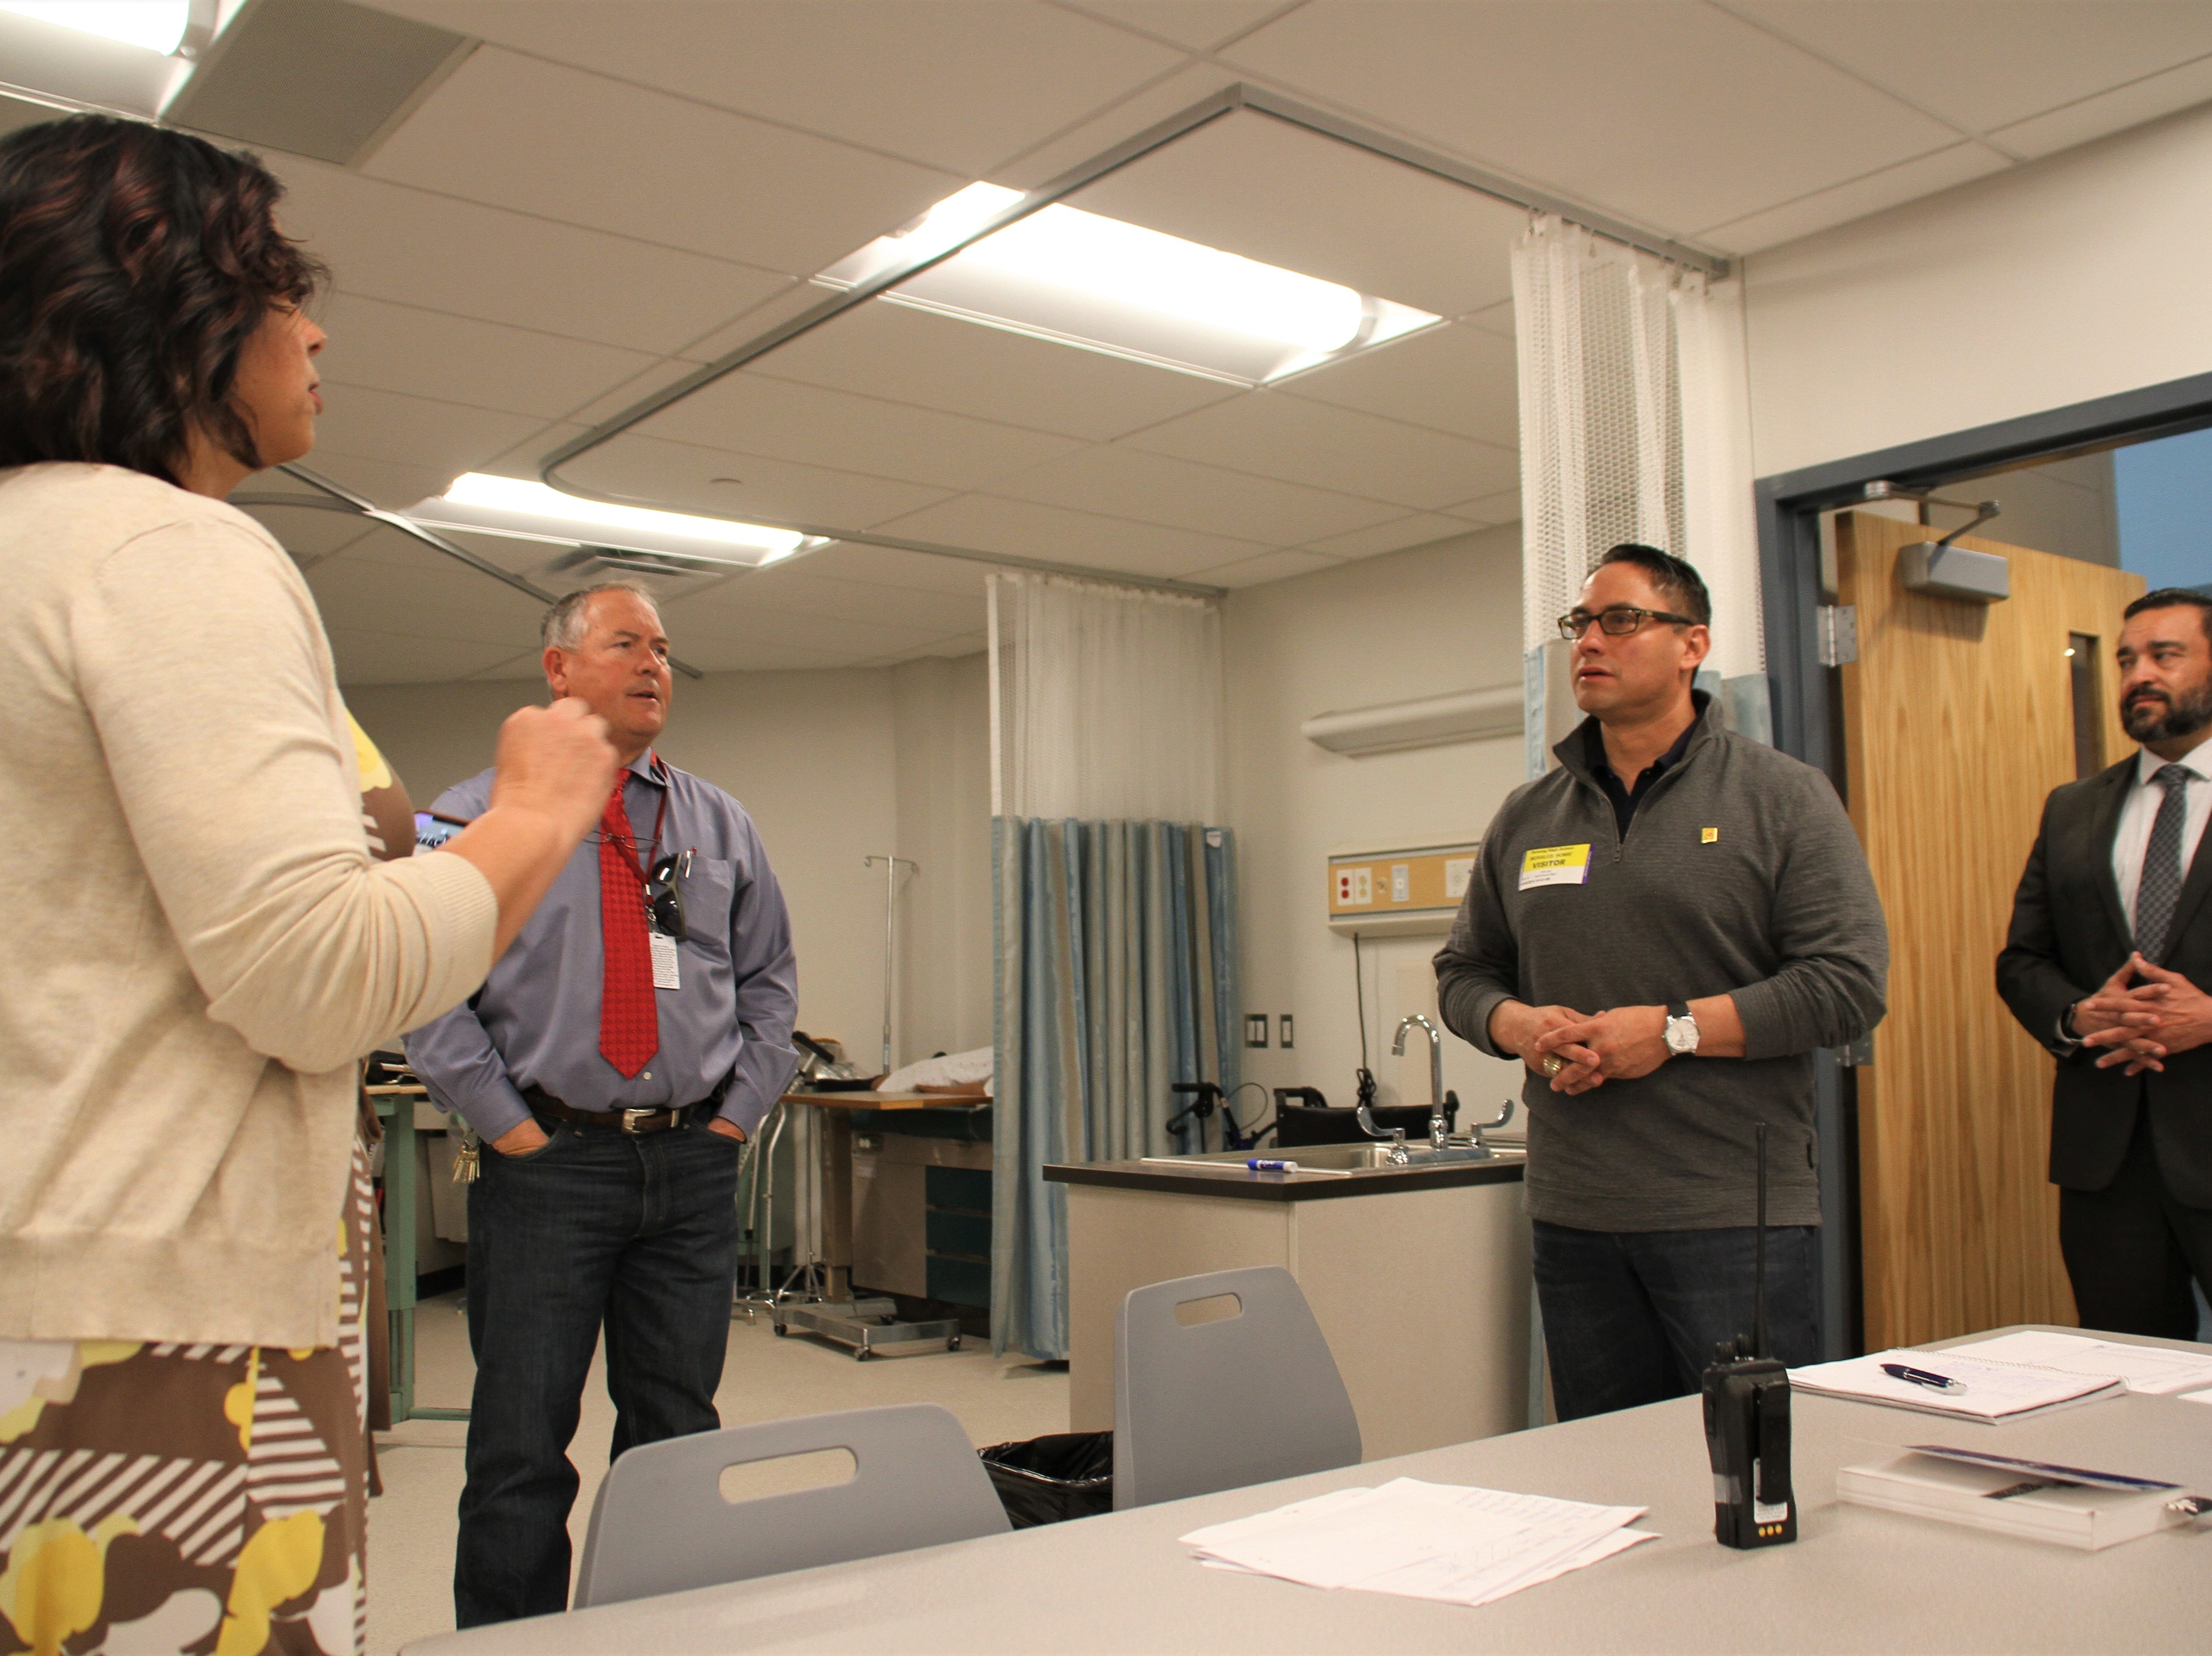 Howie and the group of administrators inside a health occupations classroom.